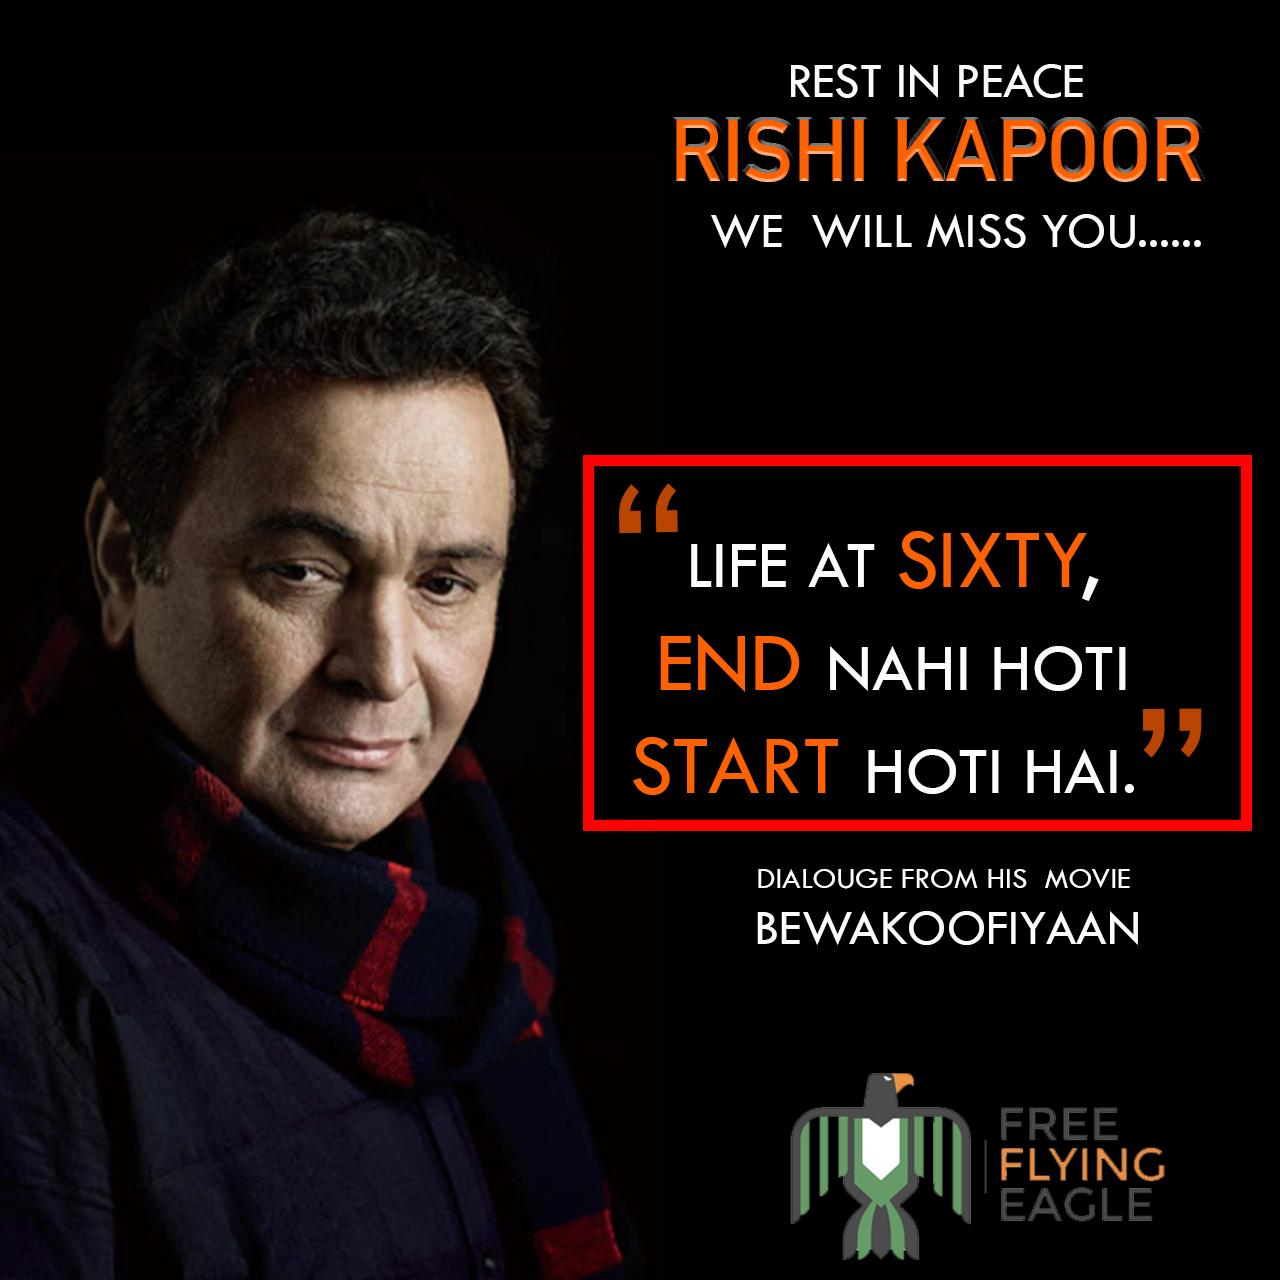 Rishi Sir: One more gem and million more tears